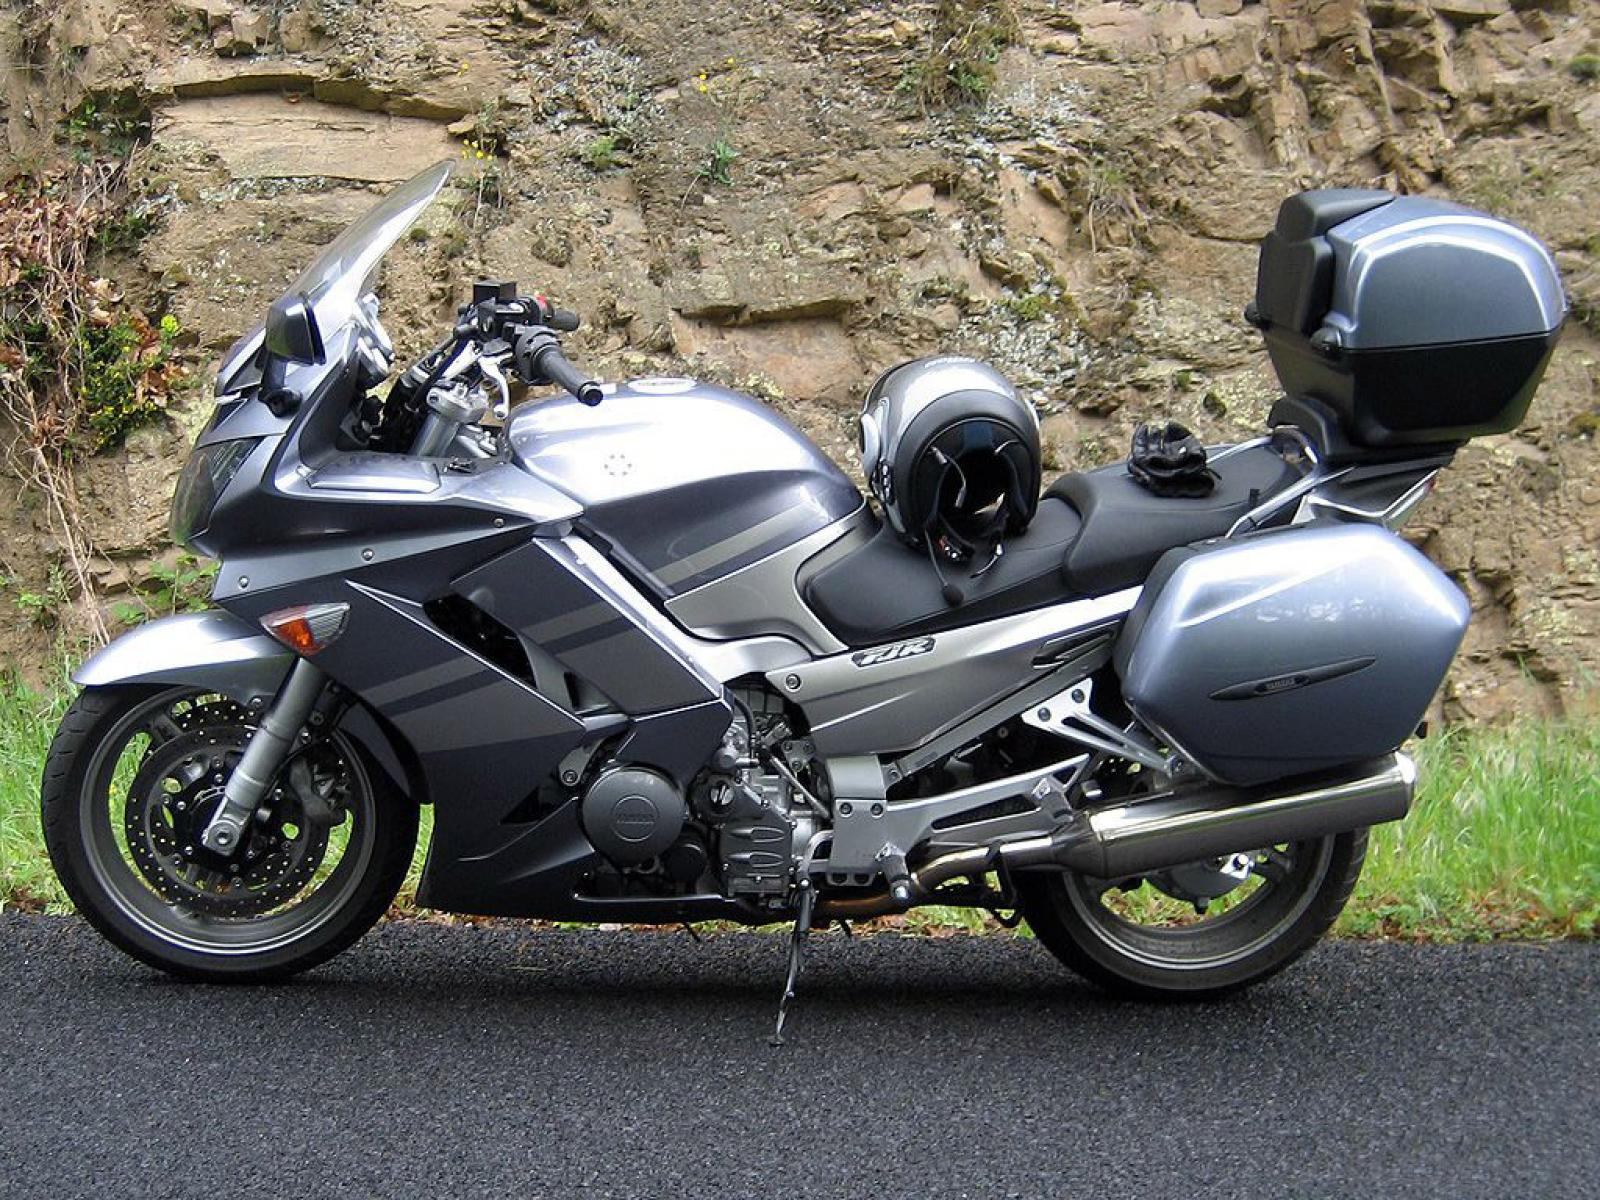 2007 yamaha fjr 1300 as moto zombdrive com. Black Bedroom Furniture Sets. Home Design Ideas